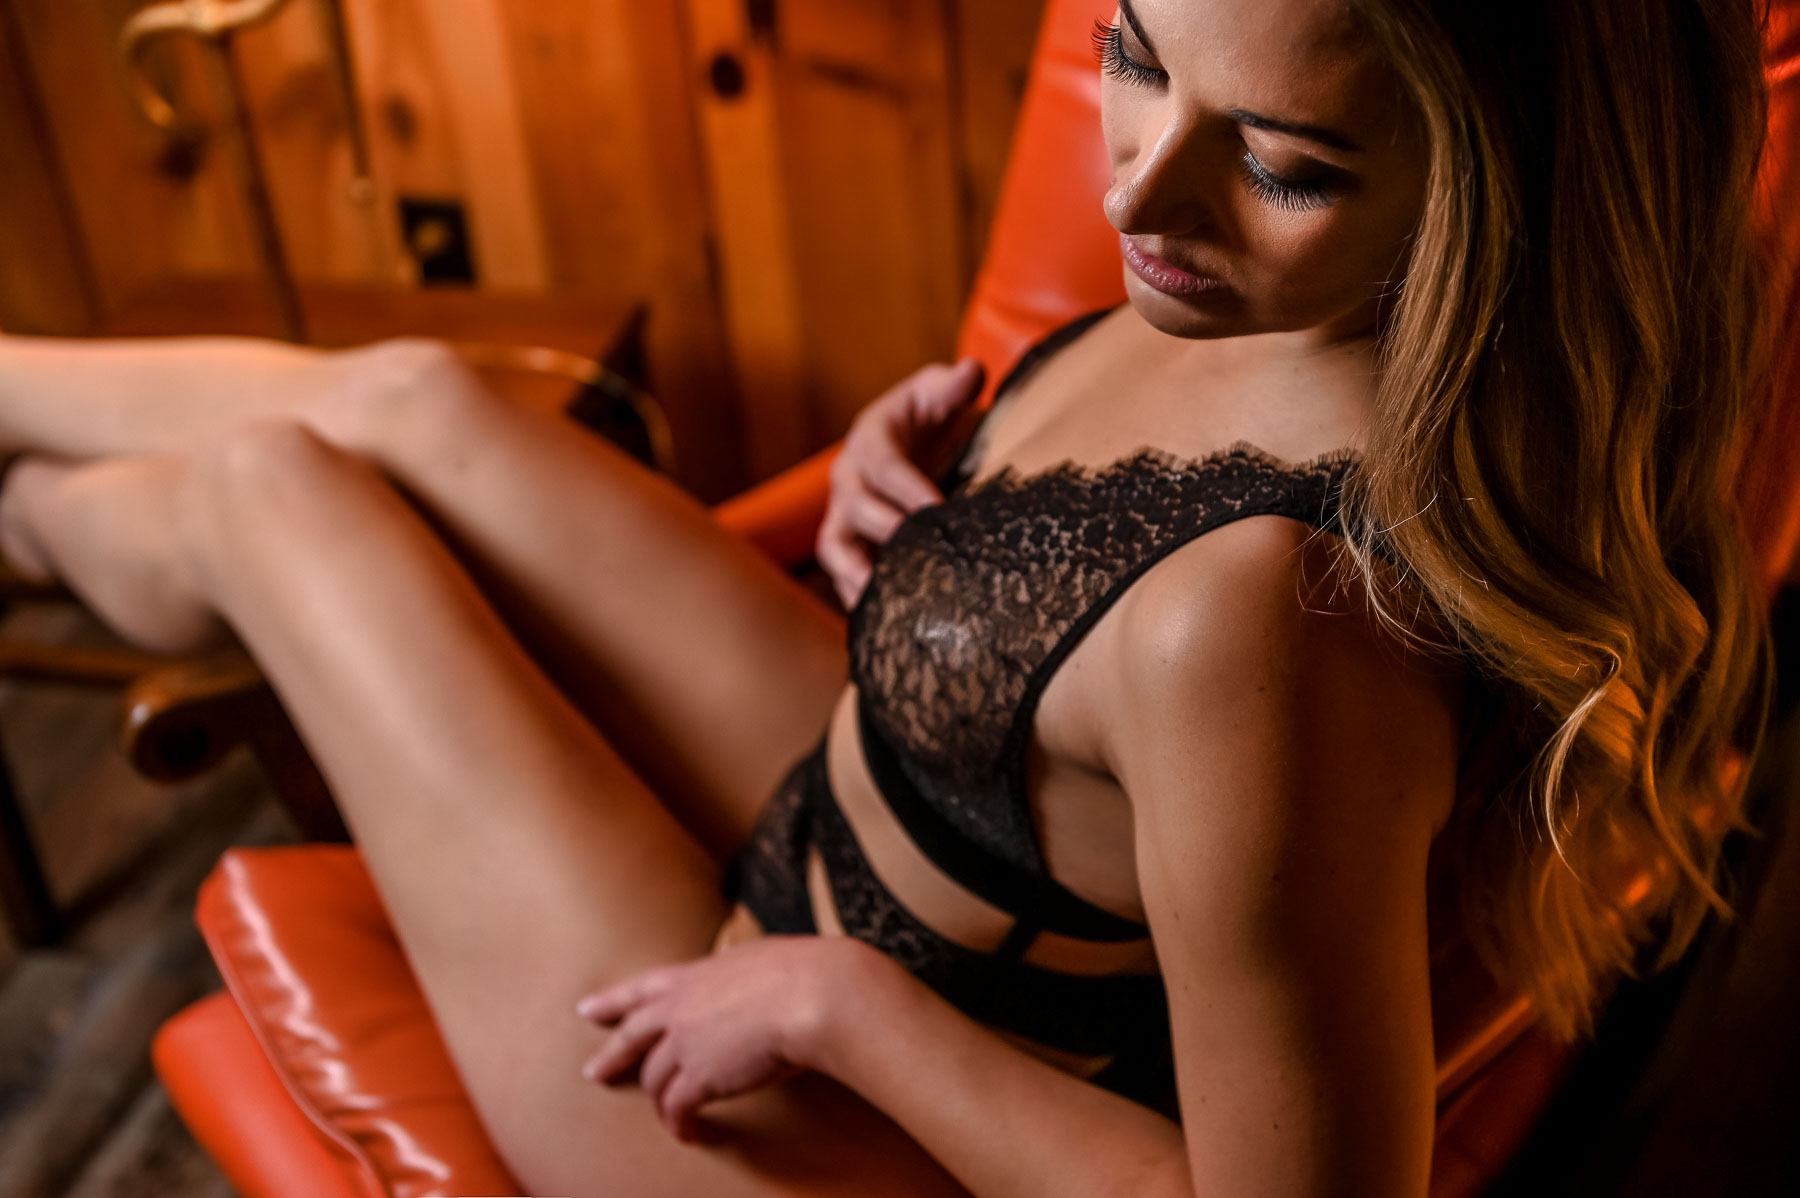 0023-KP-flagstaff-crave-cabin-boudoir-photos-DSC_3213-Edit-2019ther2studio